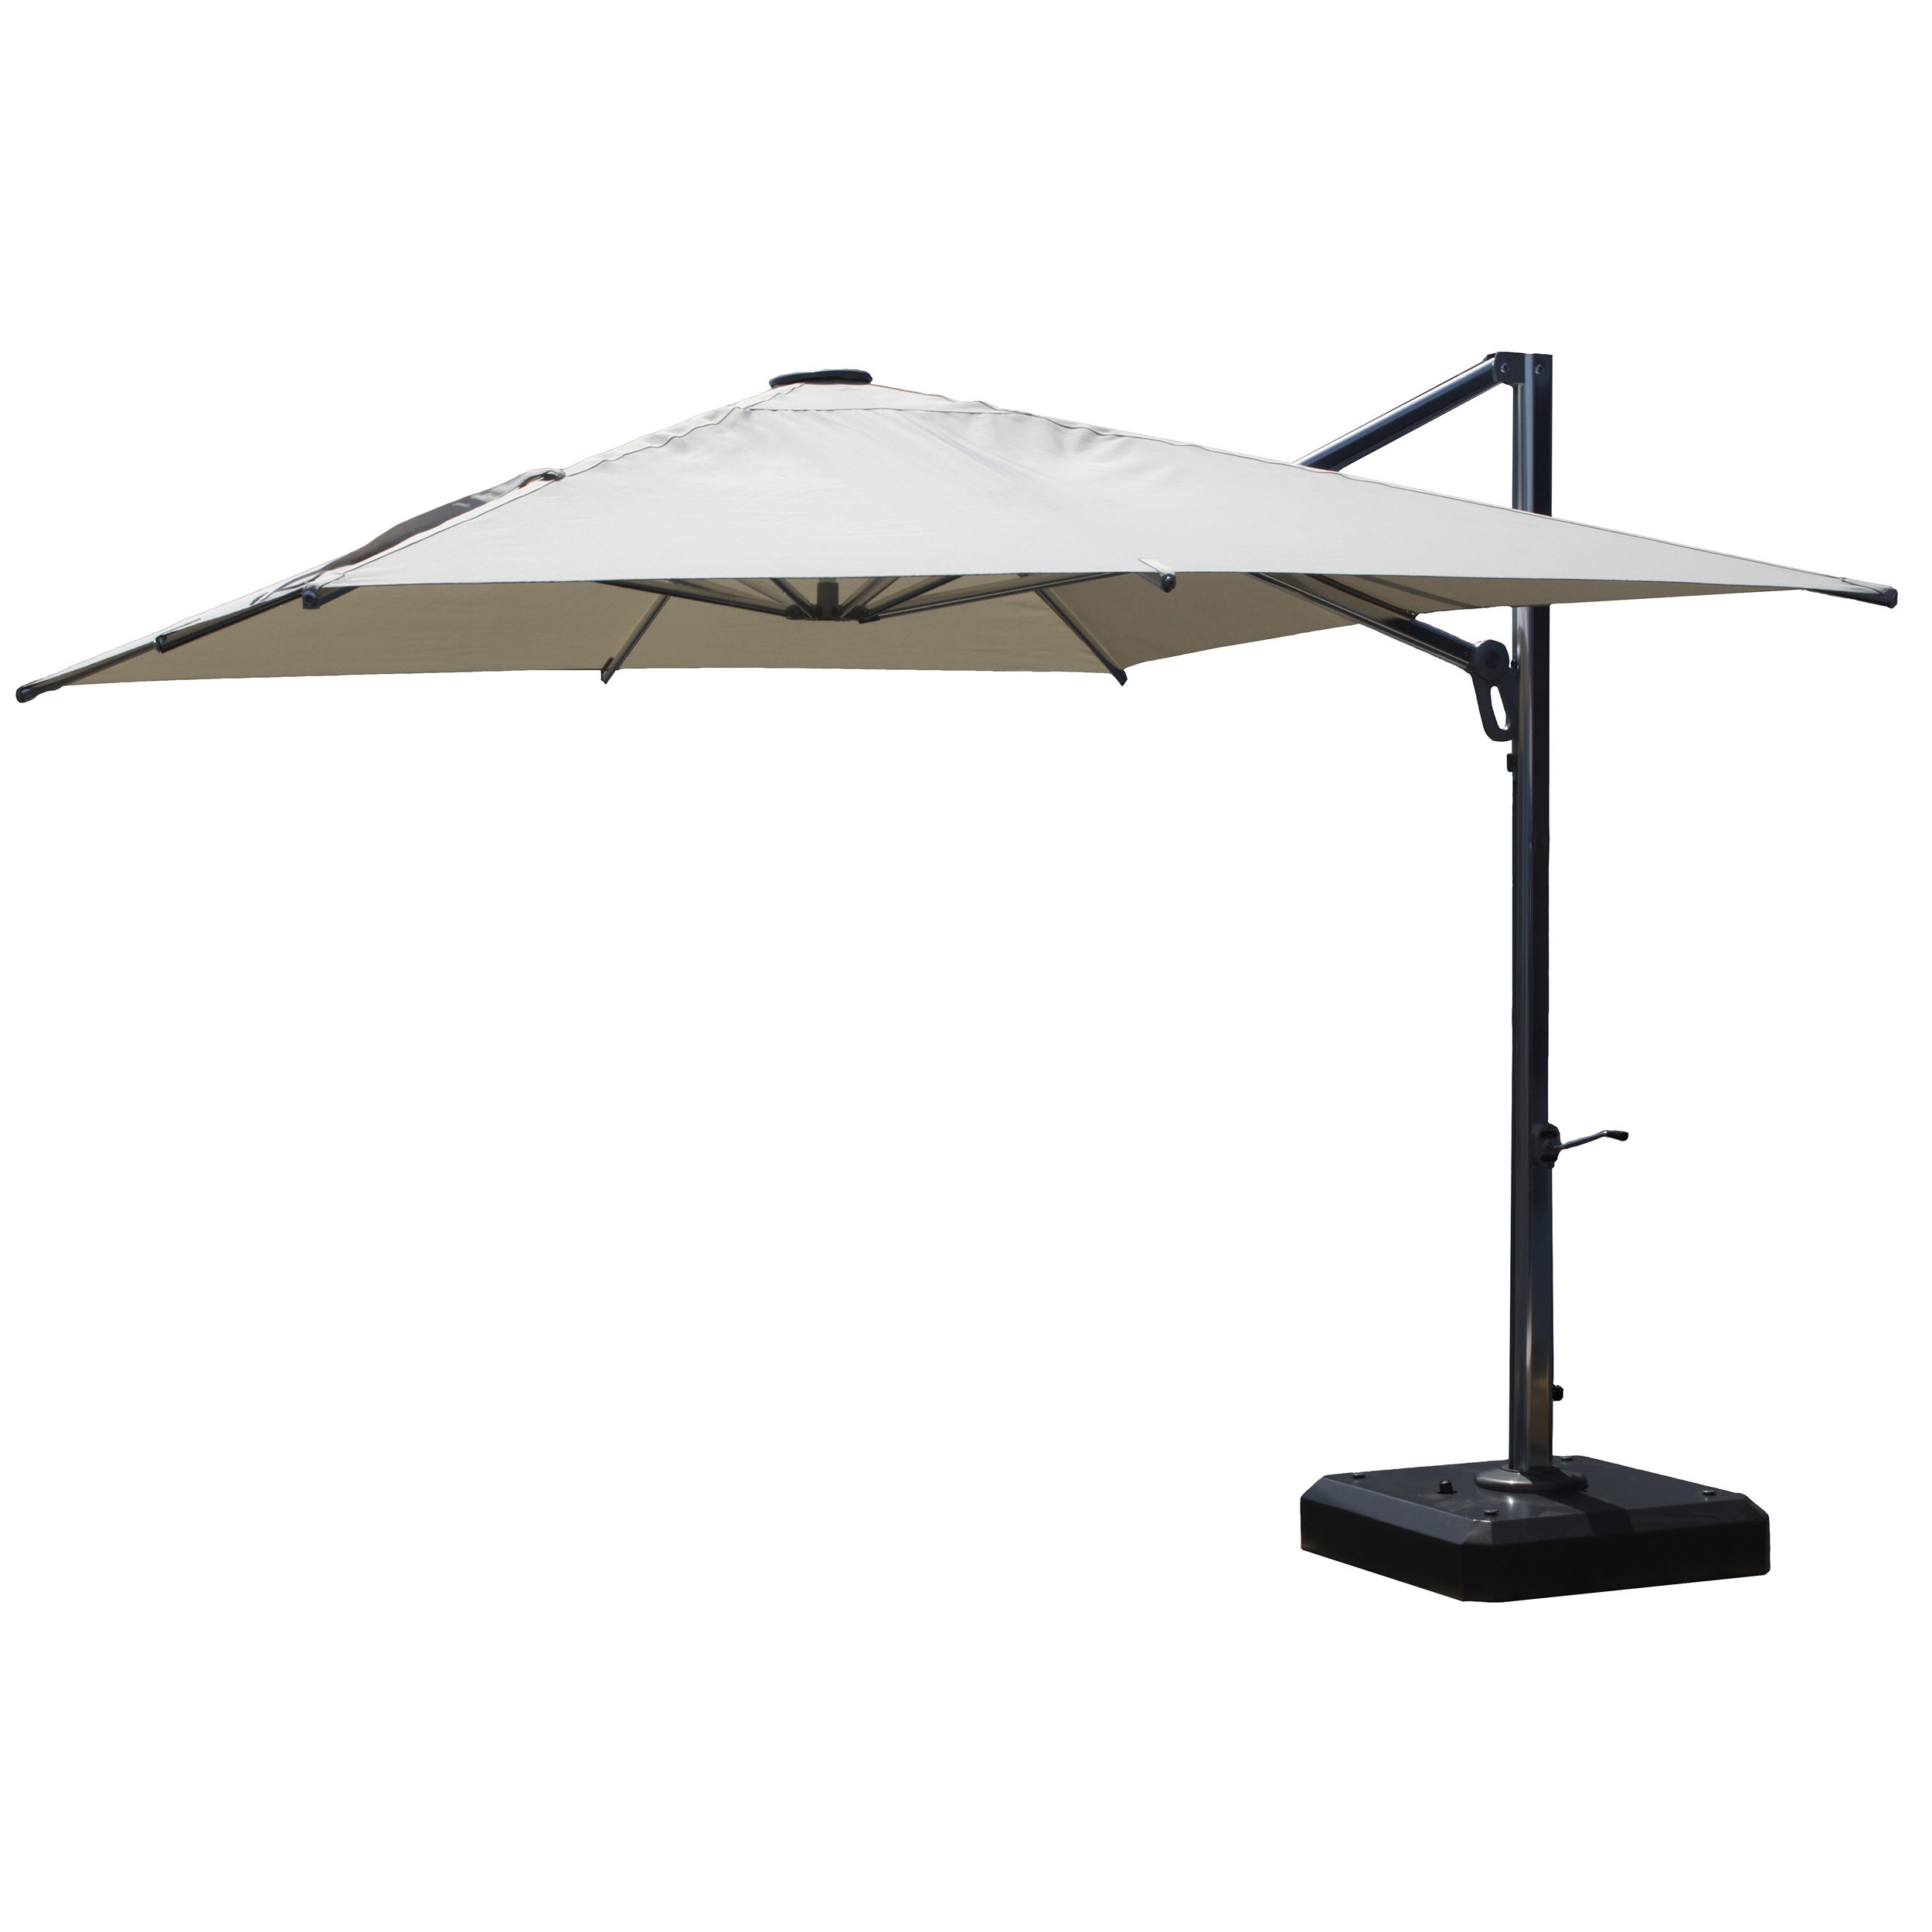 10' Square Cantilever Umbrella With Widely Used Emely Cantilever Umbrellas (View 1 of 20)